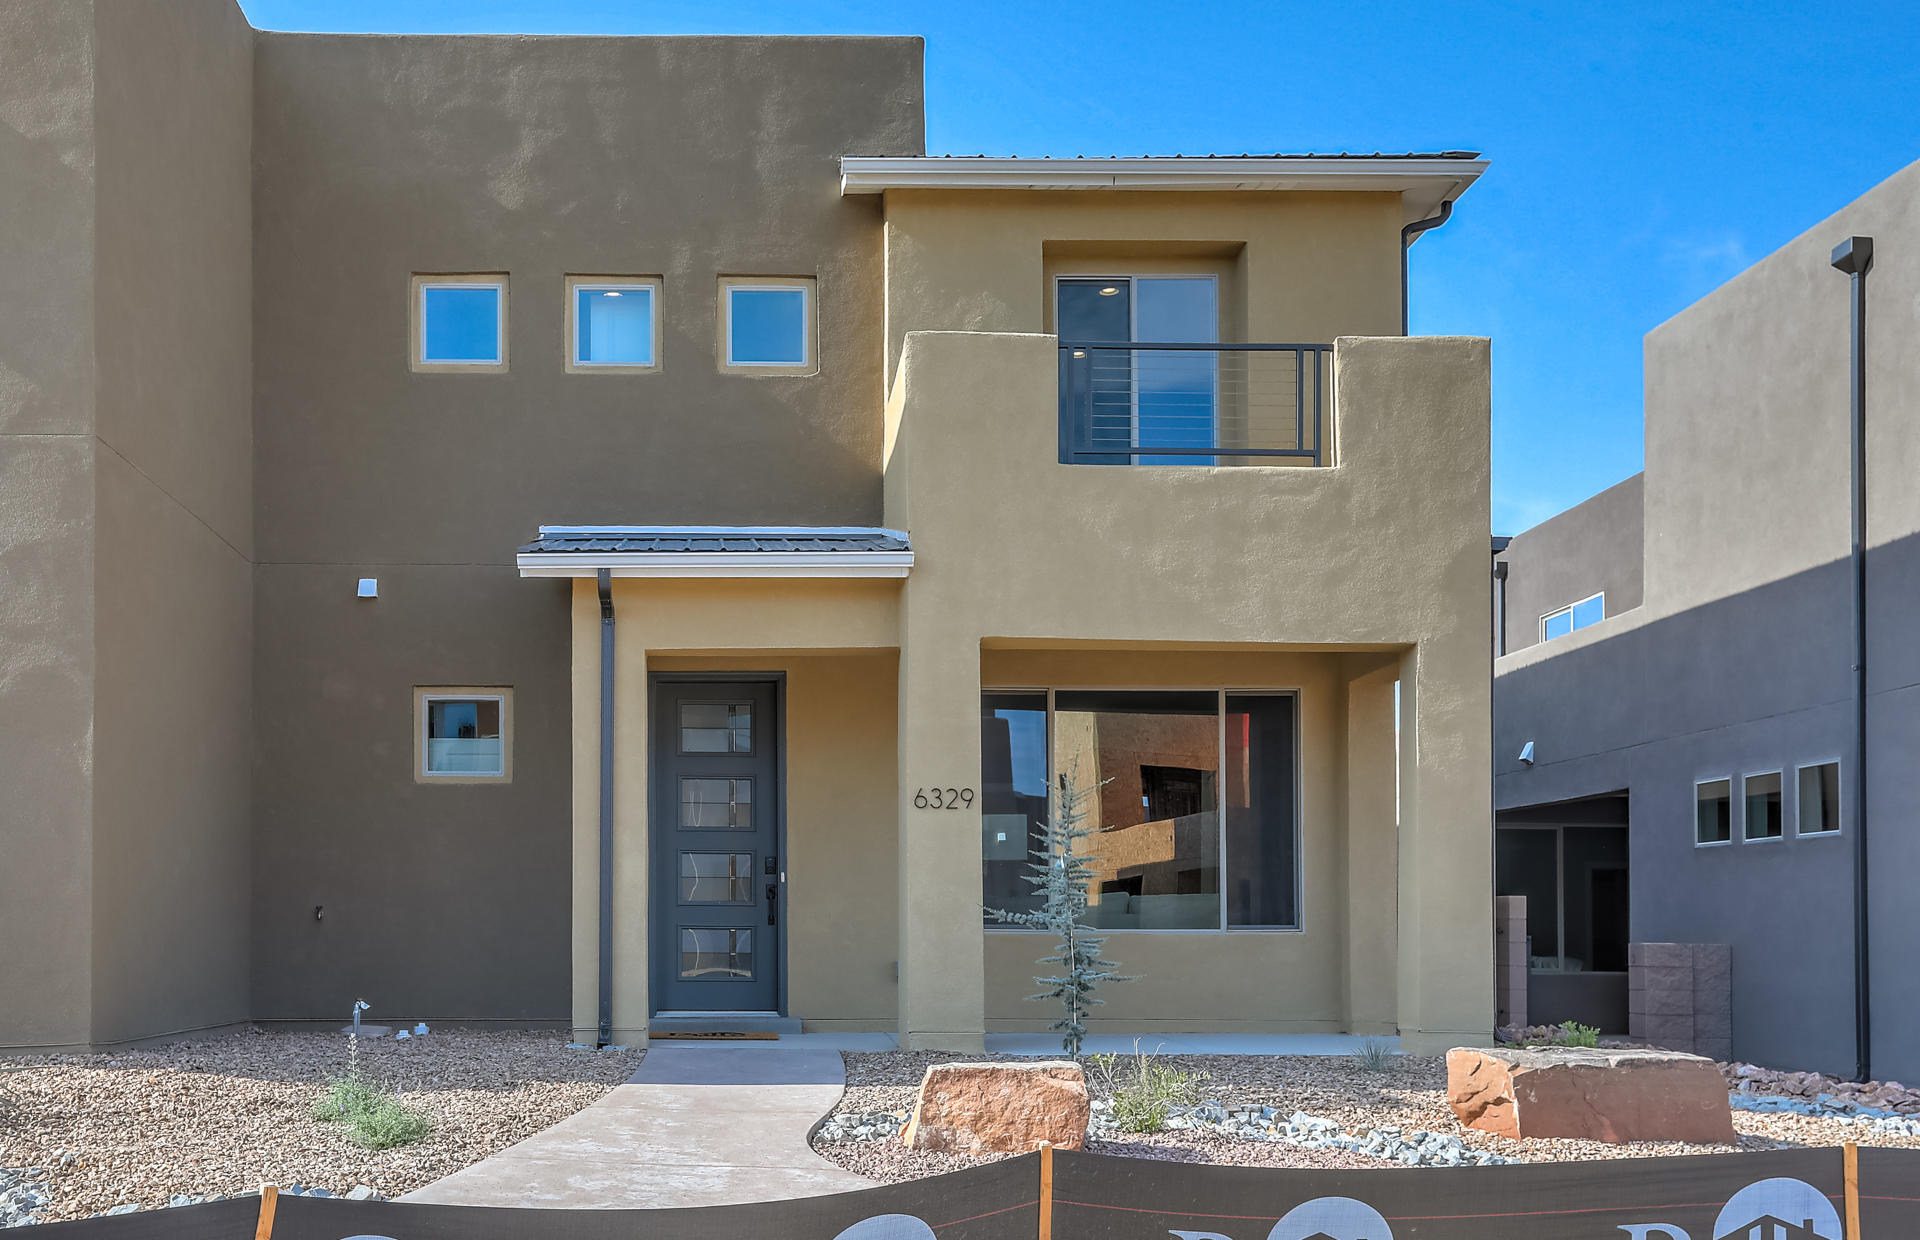 6329 NW Vista del Bosque Drive, one of homes for sale in Northwest Albuquerque and Northwest Heights